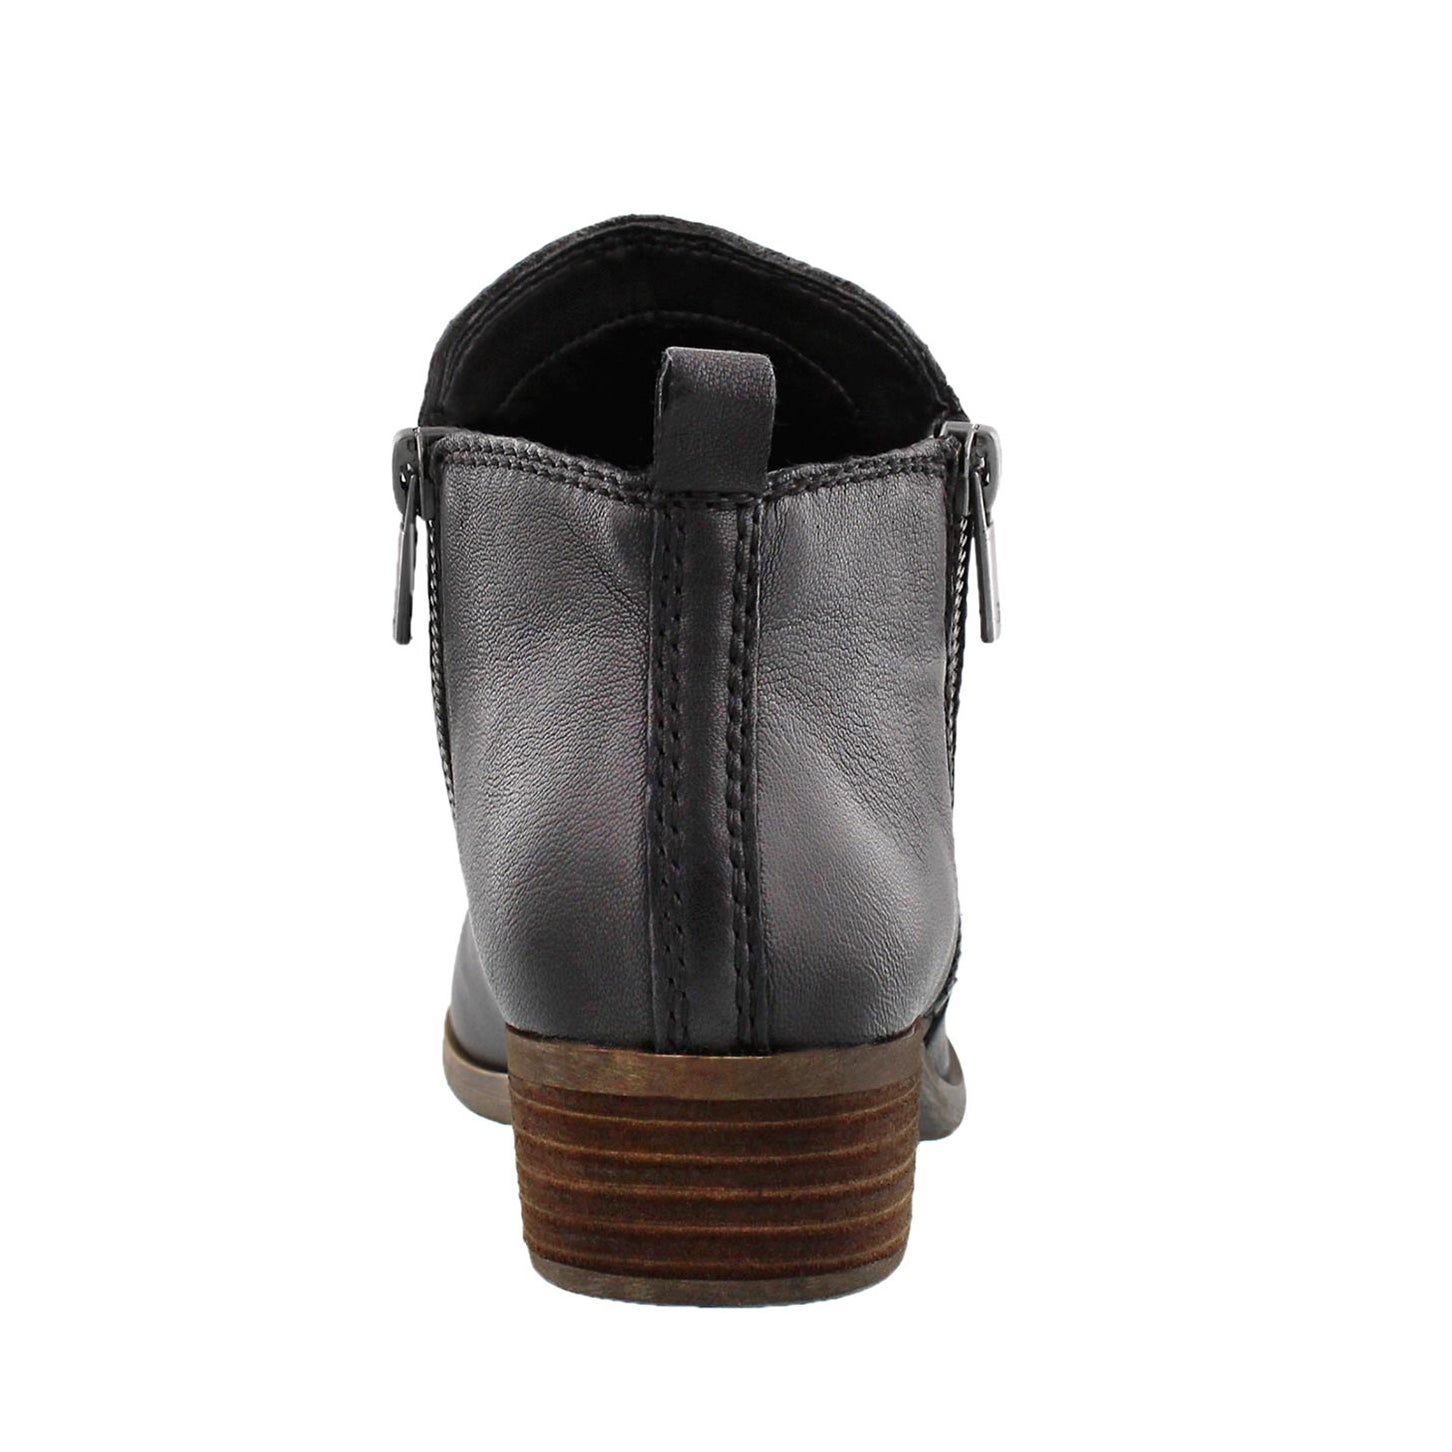 Lds Basel black zip up casual bootie